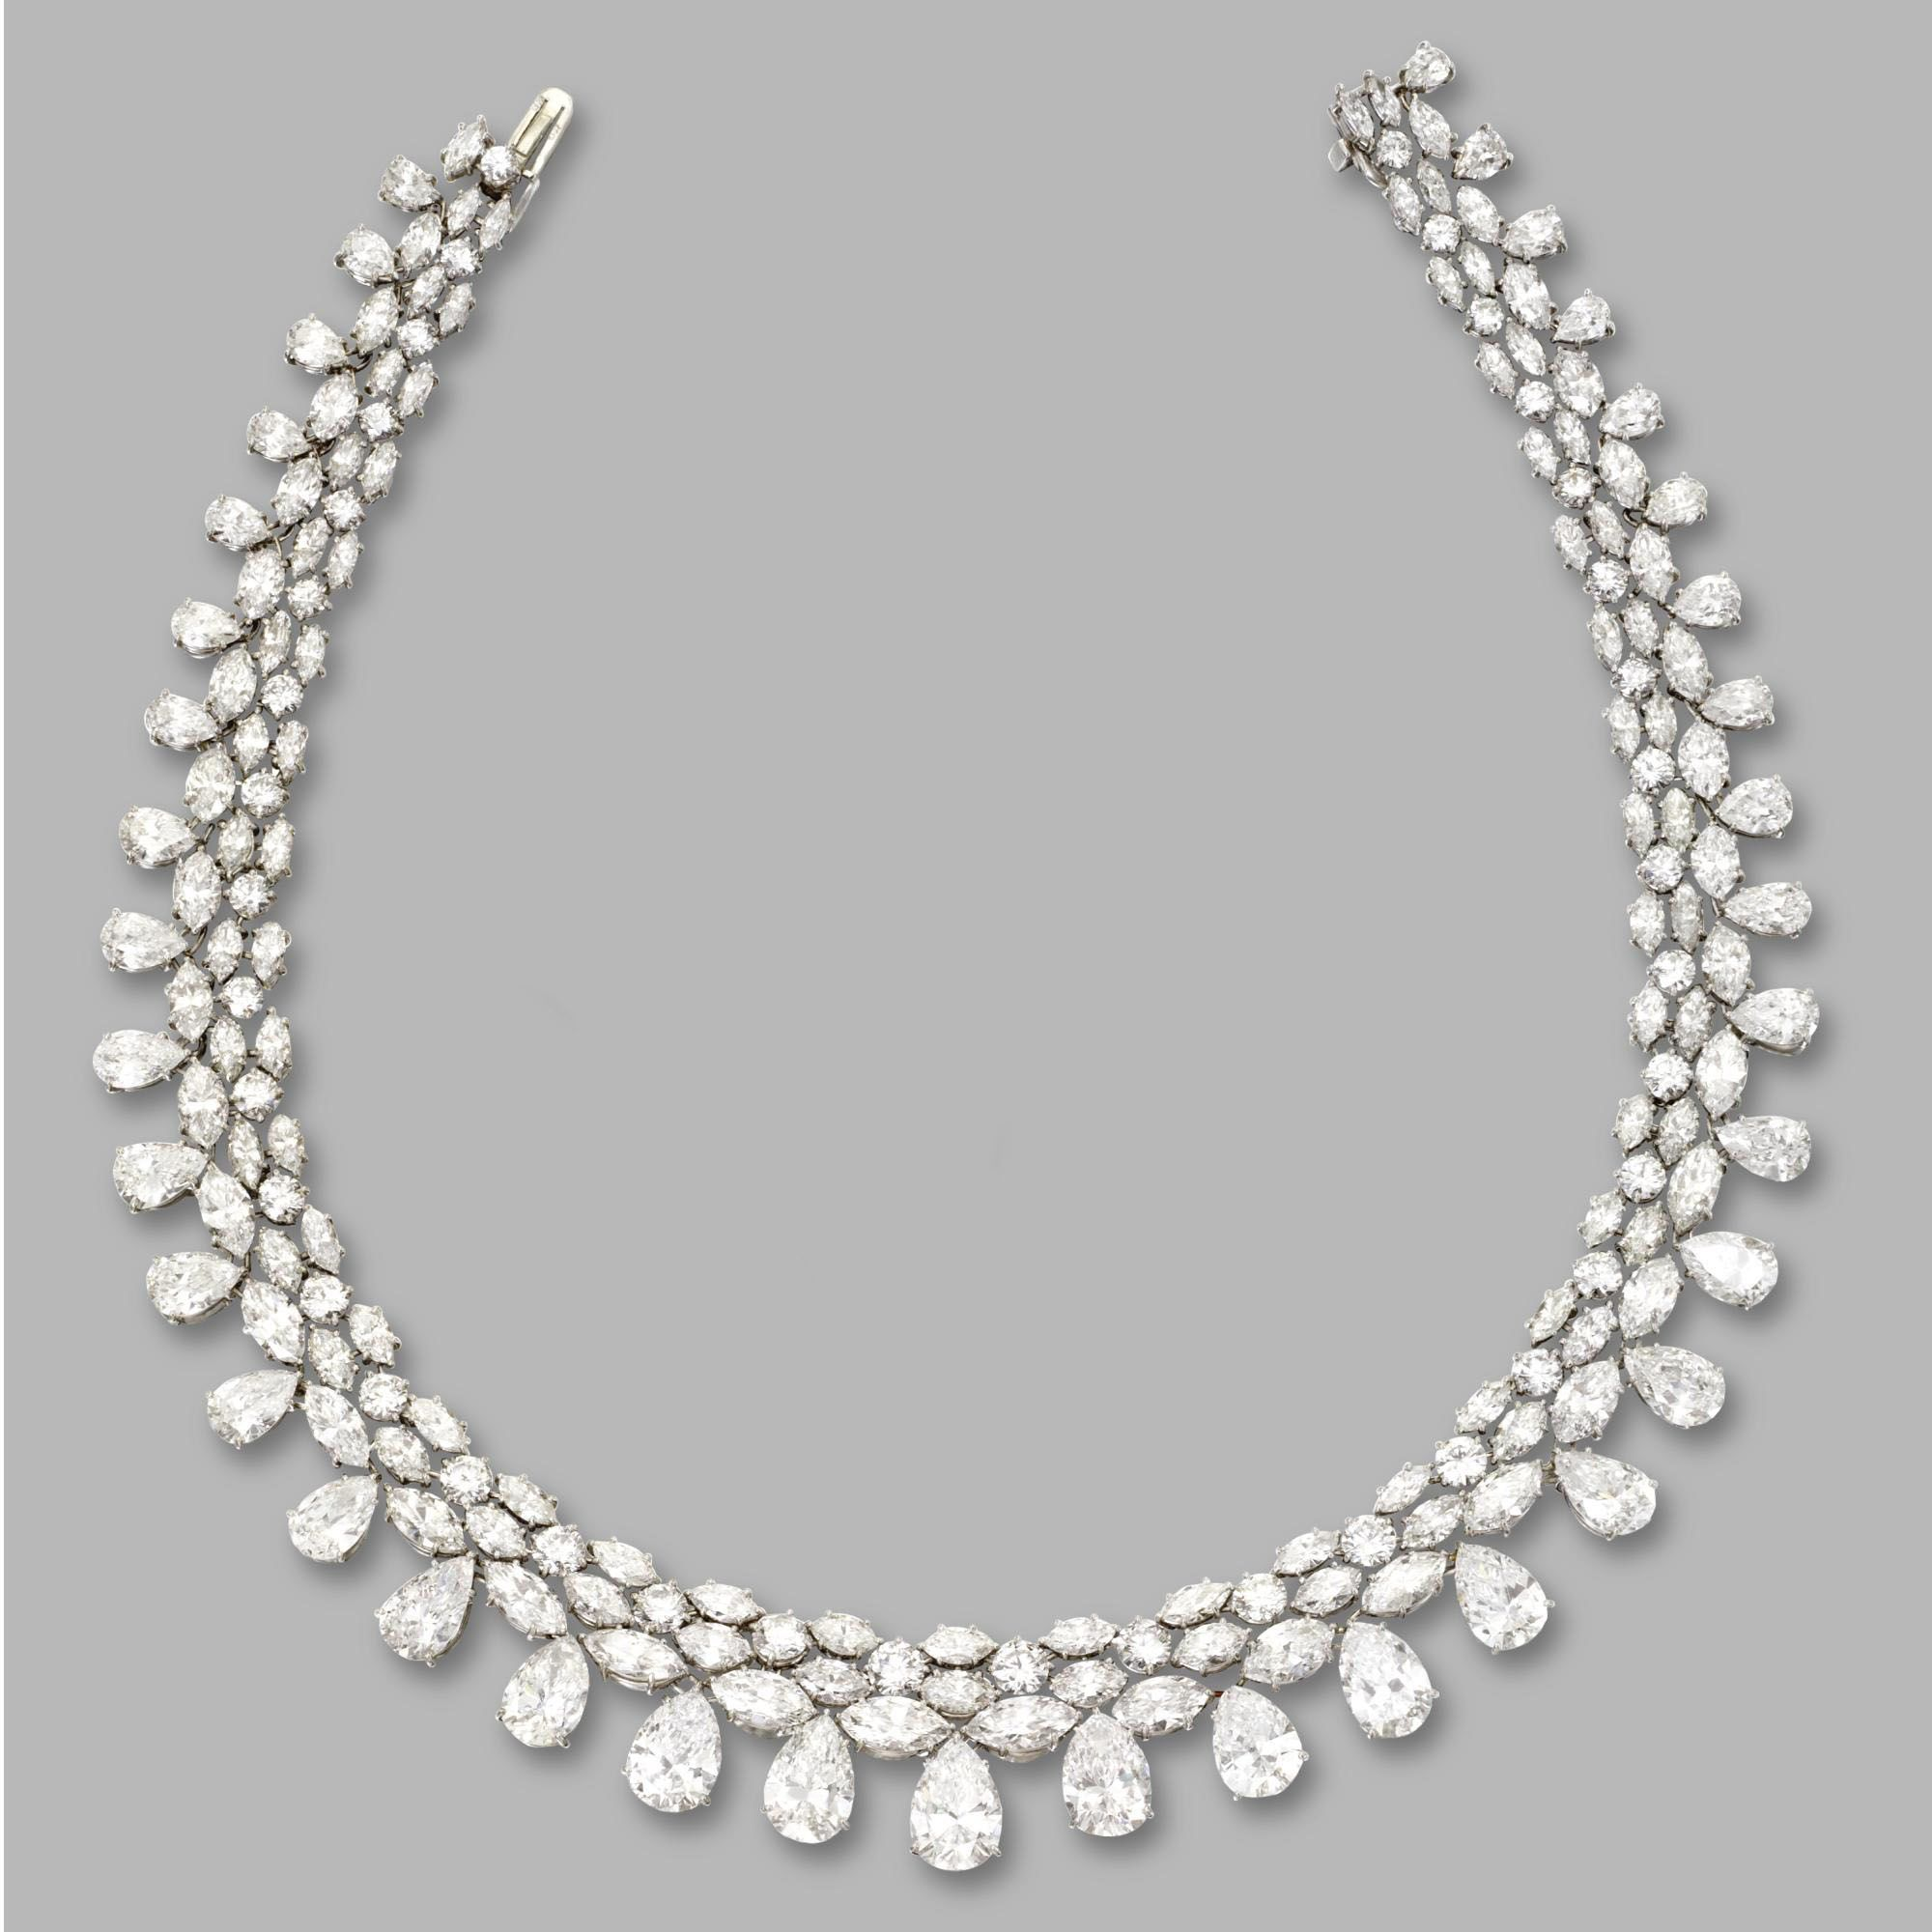 necklace current lr lot s diamond en auctions pendant ecatalogue marquis magnificent sotheby jewels